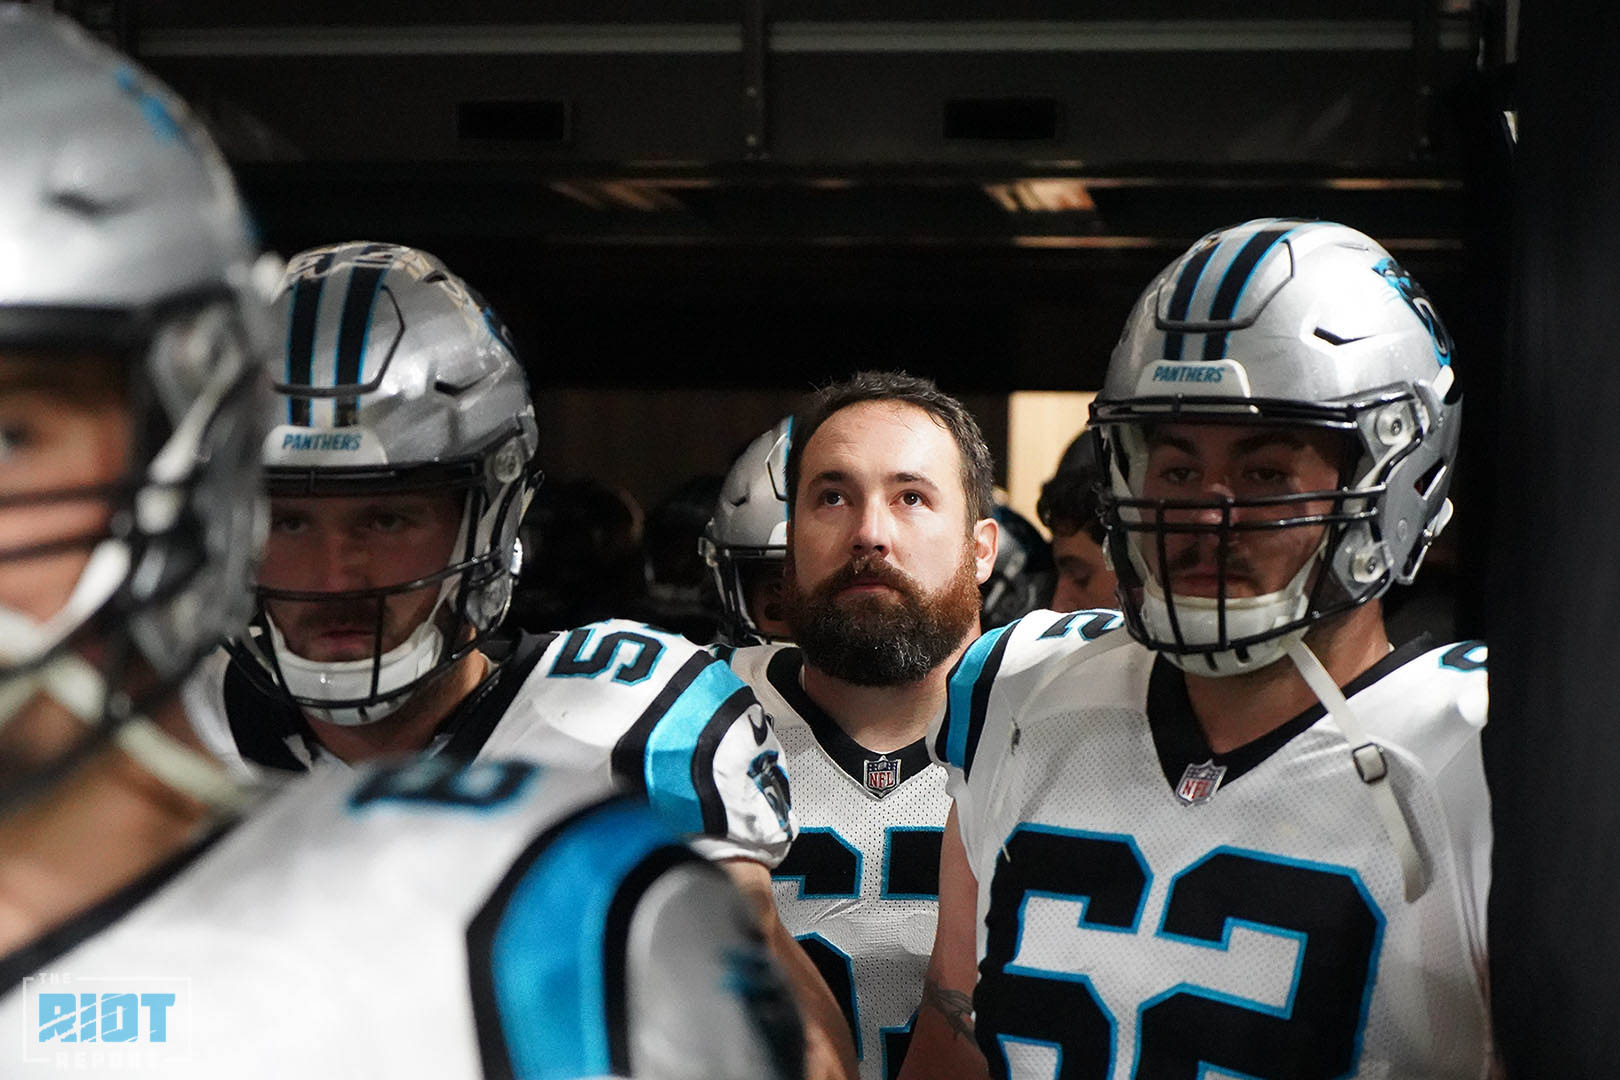 Ryan Kalil Says Goodbye, Leaves The Leading To The Next Generation